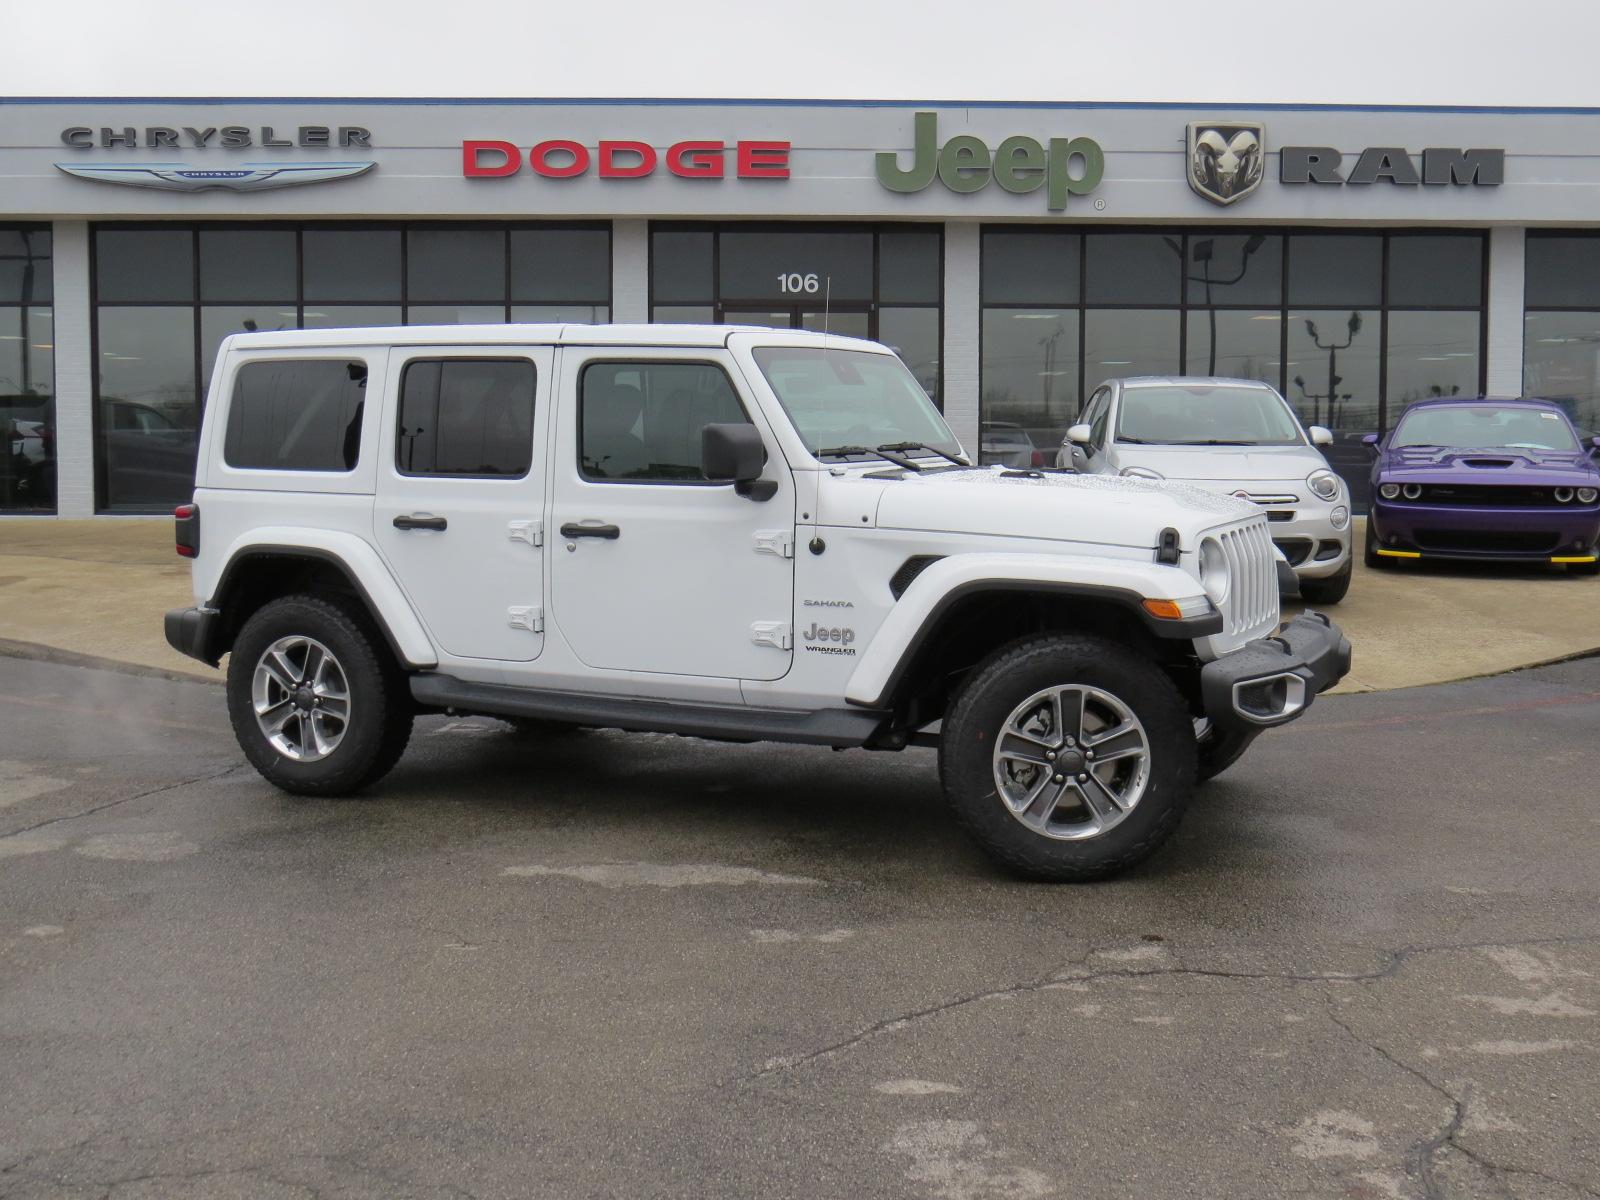 Sedia Bar Sport New 2019 Jeep Wrangler Unlimited Sahara 4x4